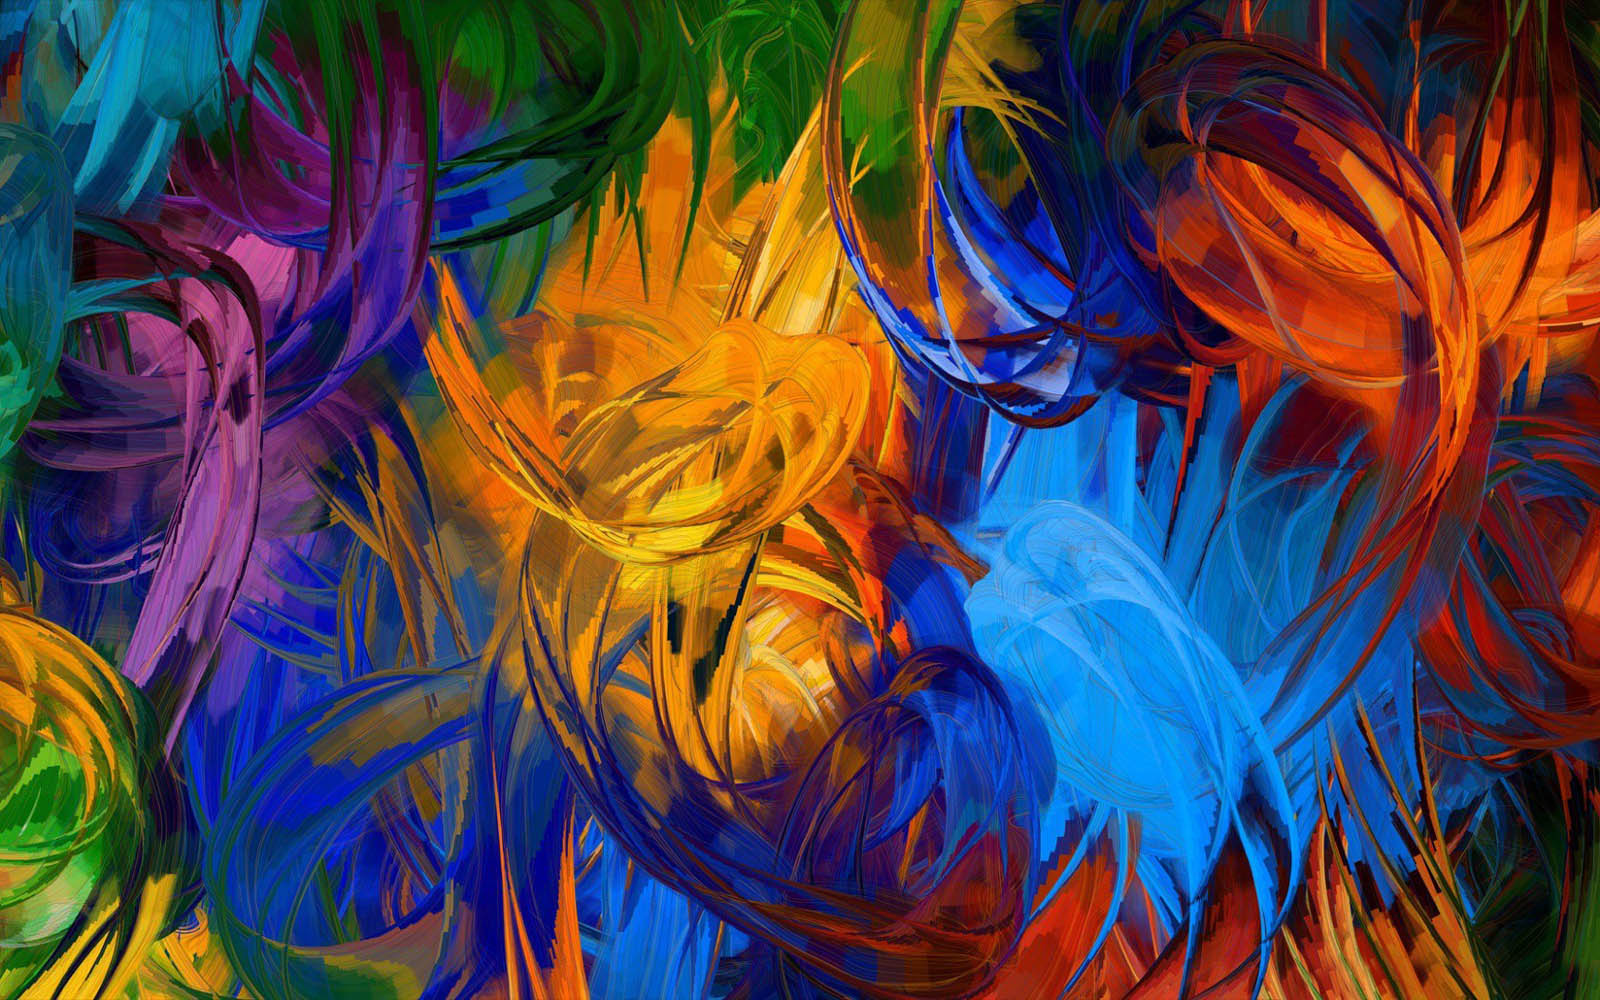 abstract paintings wallpapers 07